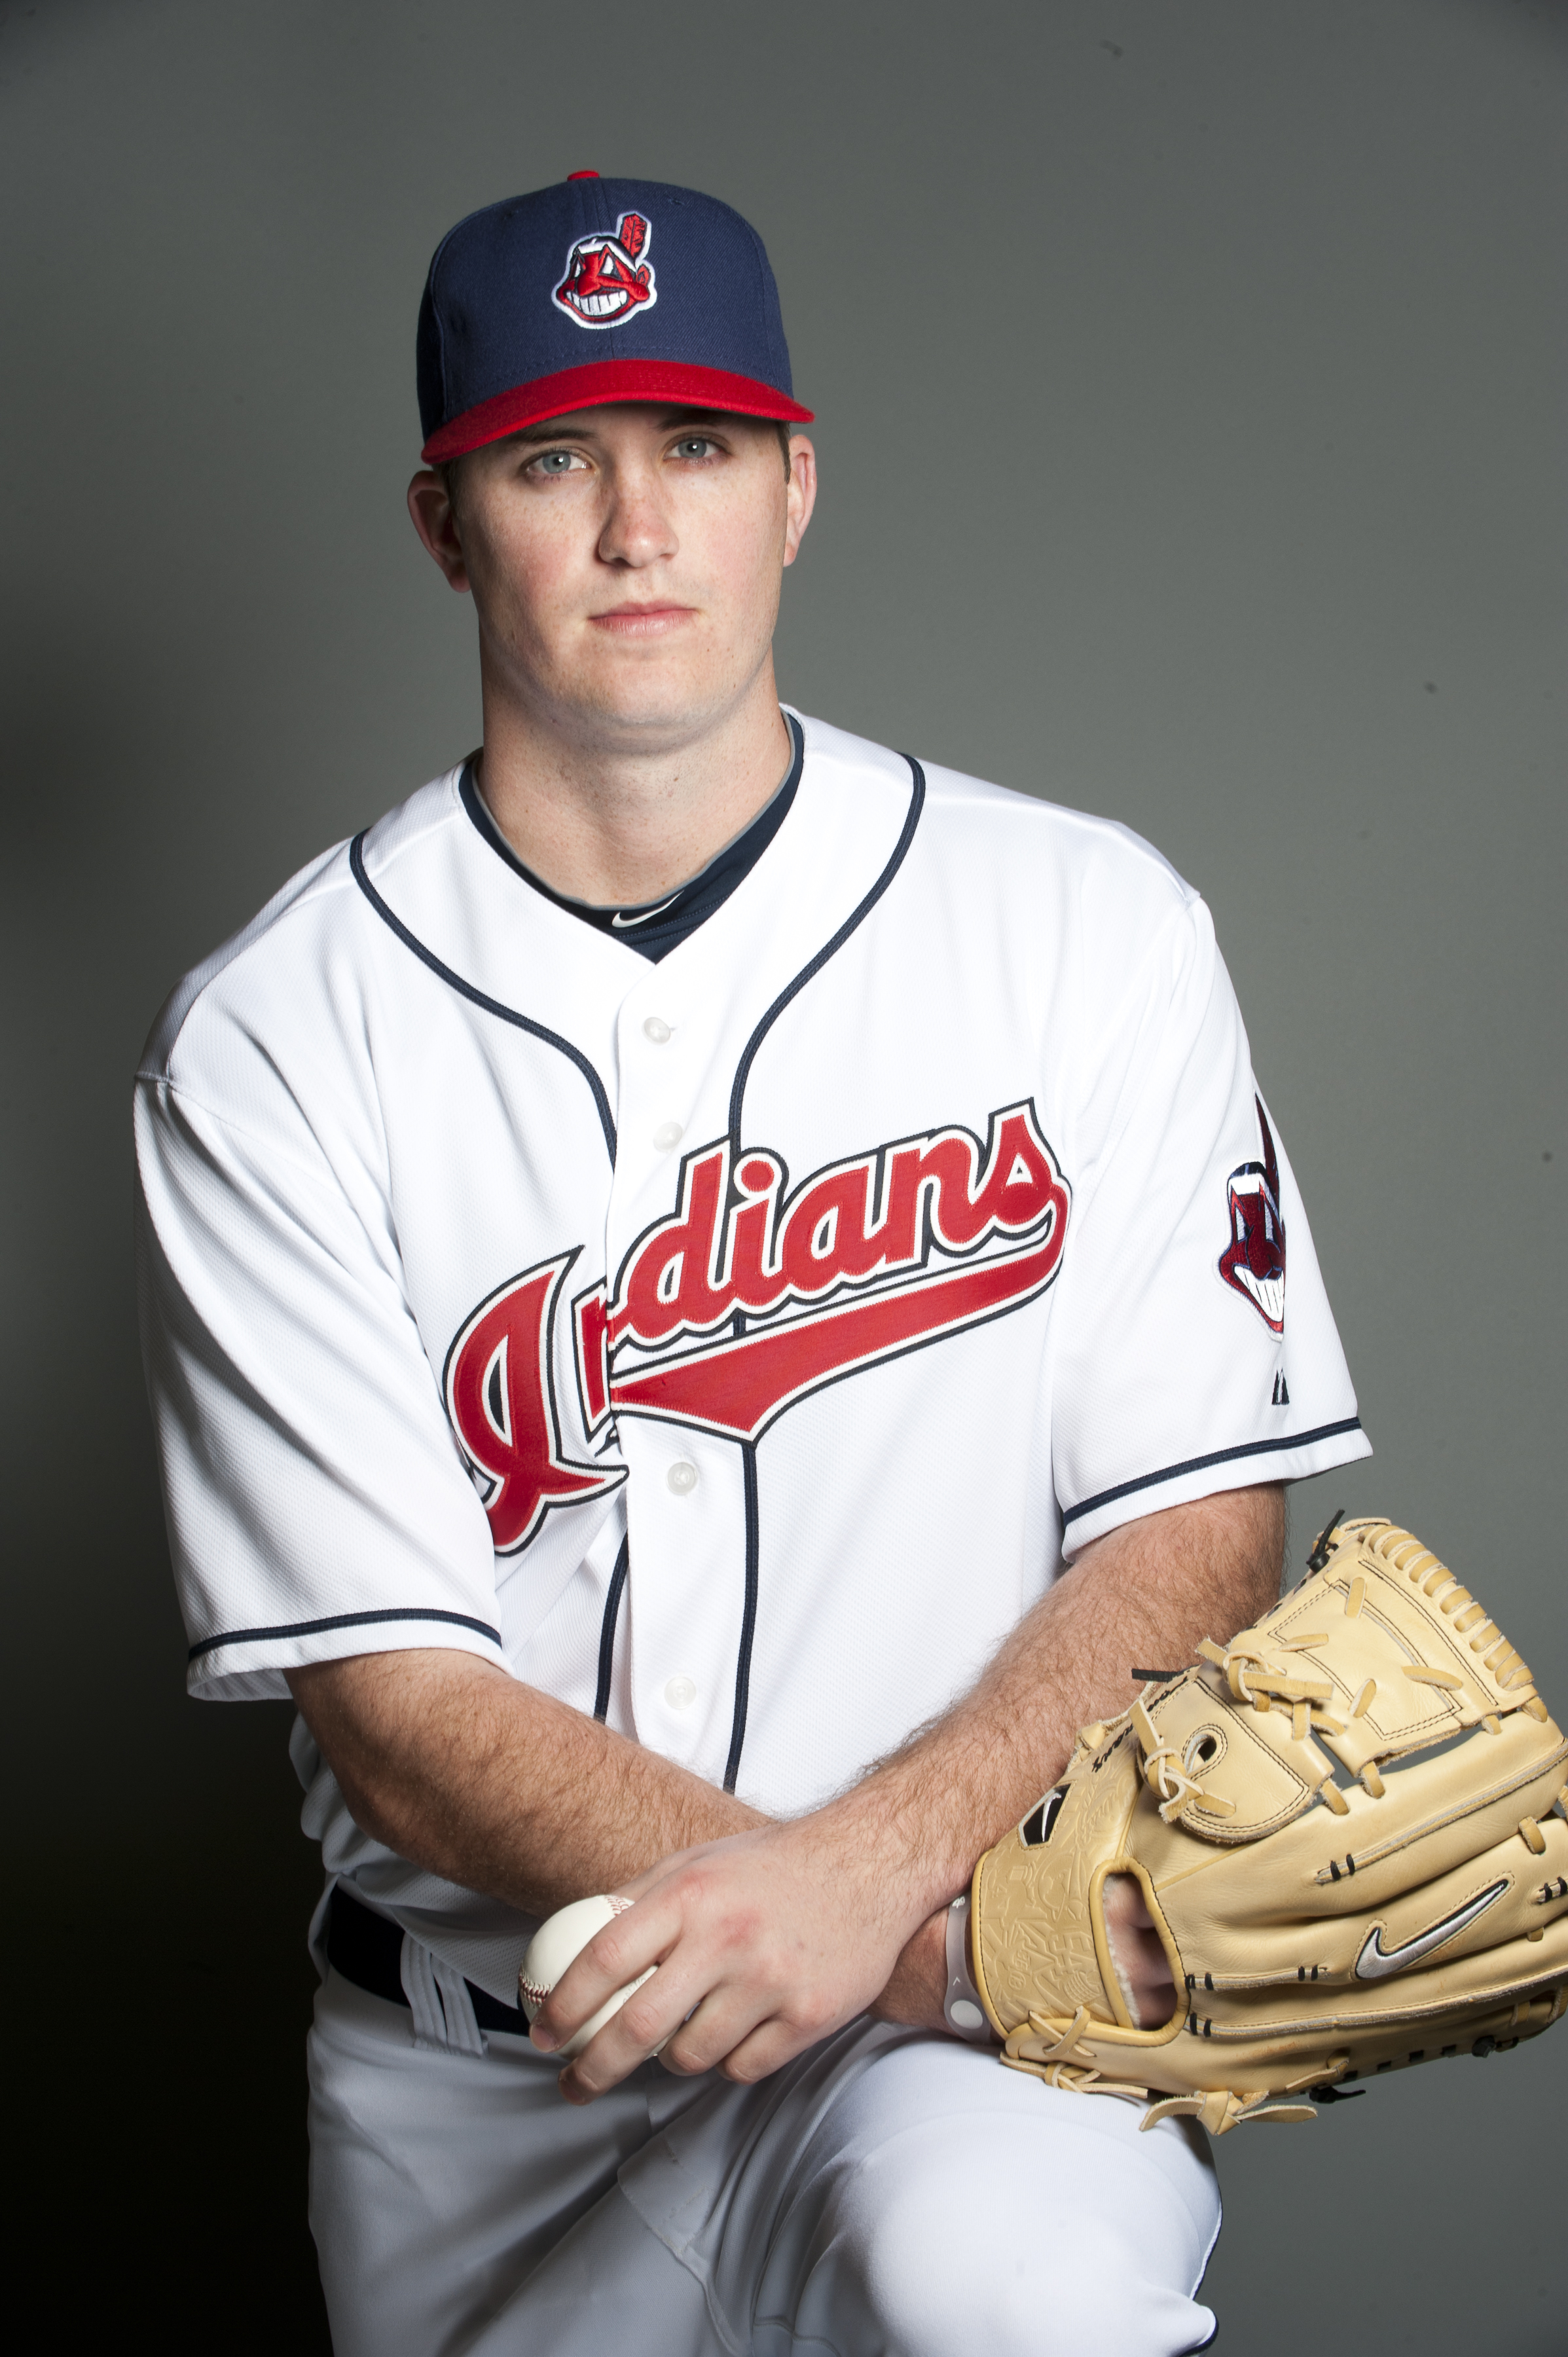 GOODYEAR, AZ - FEBRUARY 22: Drew Pomeranz #78 of the Cleveland Indians poses during their photo day at the Cleveland Indians Spring Training Complex on February 22, 2011 in Goodyear, Arizona. (Photo by Rob Tringali/Getty Images)